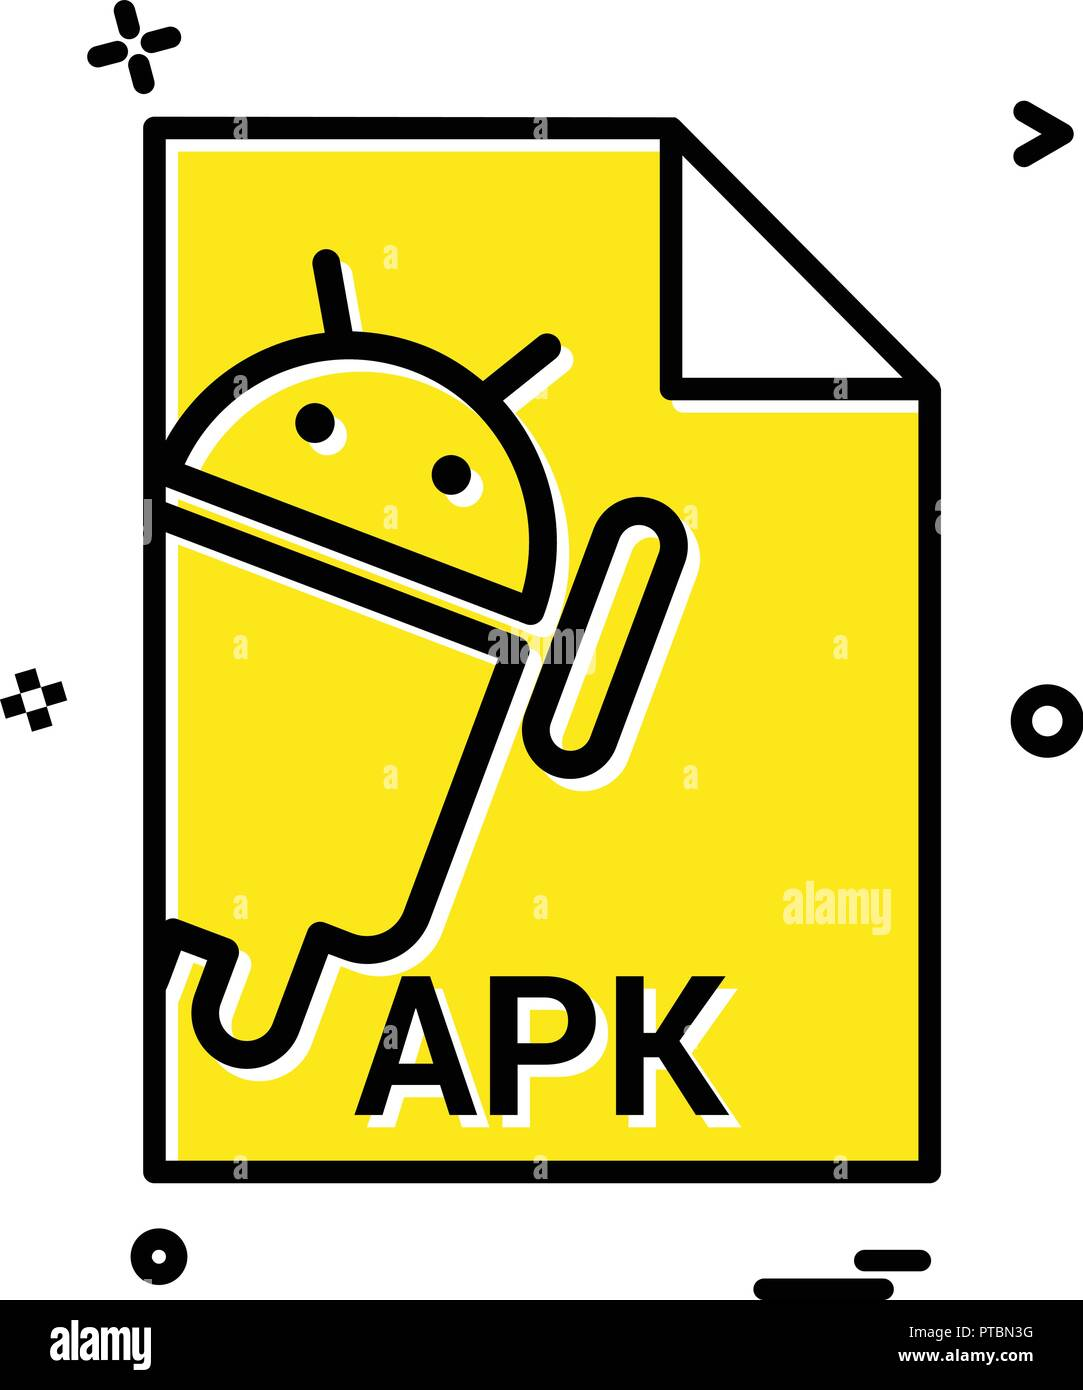 Apk Cut Out Stock Images & Pictures - Alamy